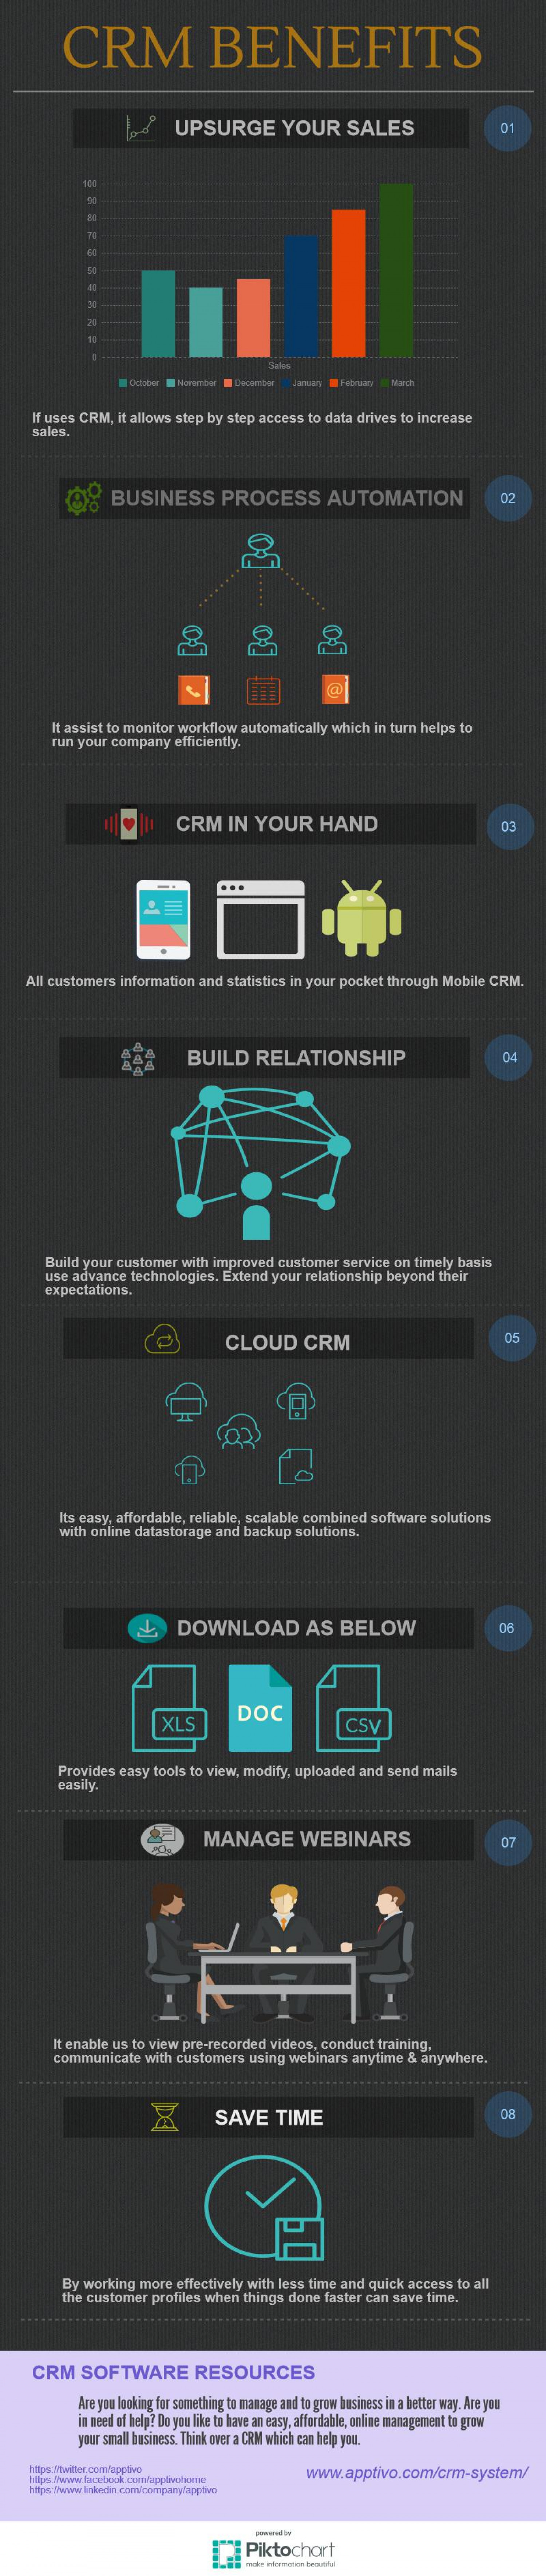 CRM Benefits Infographic